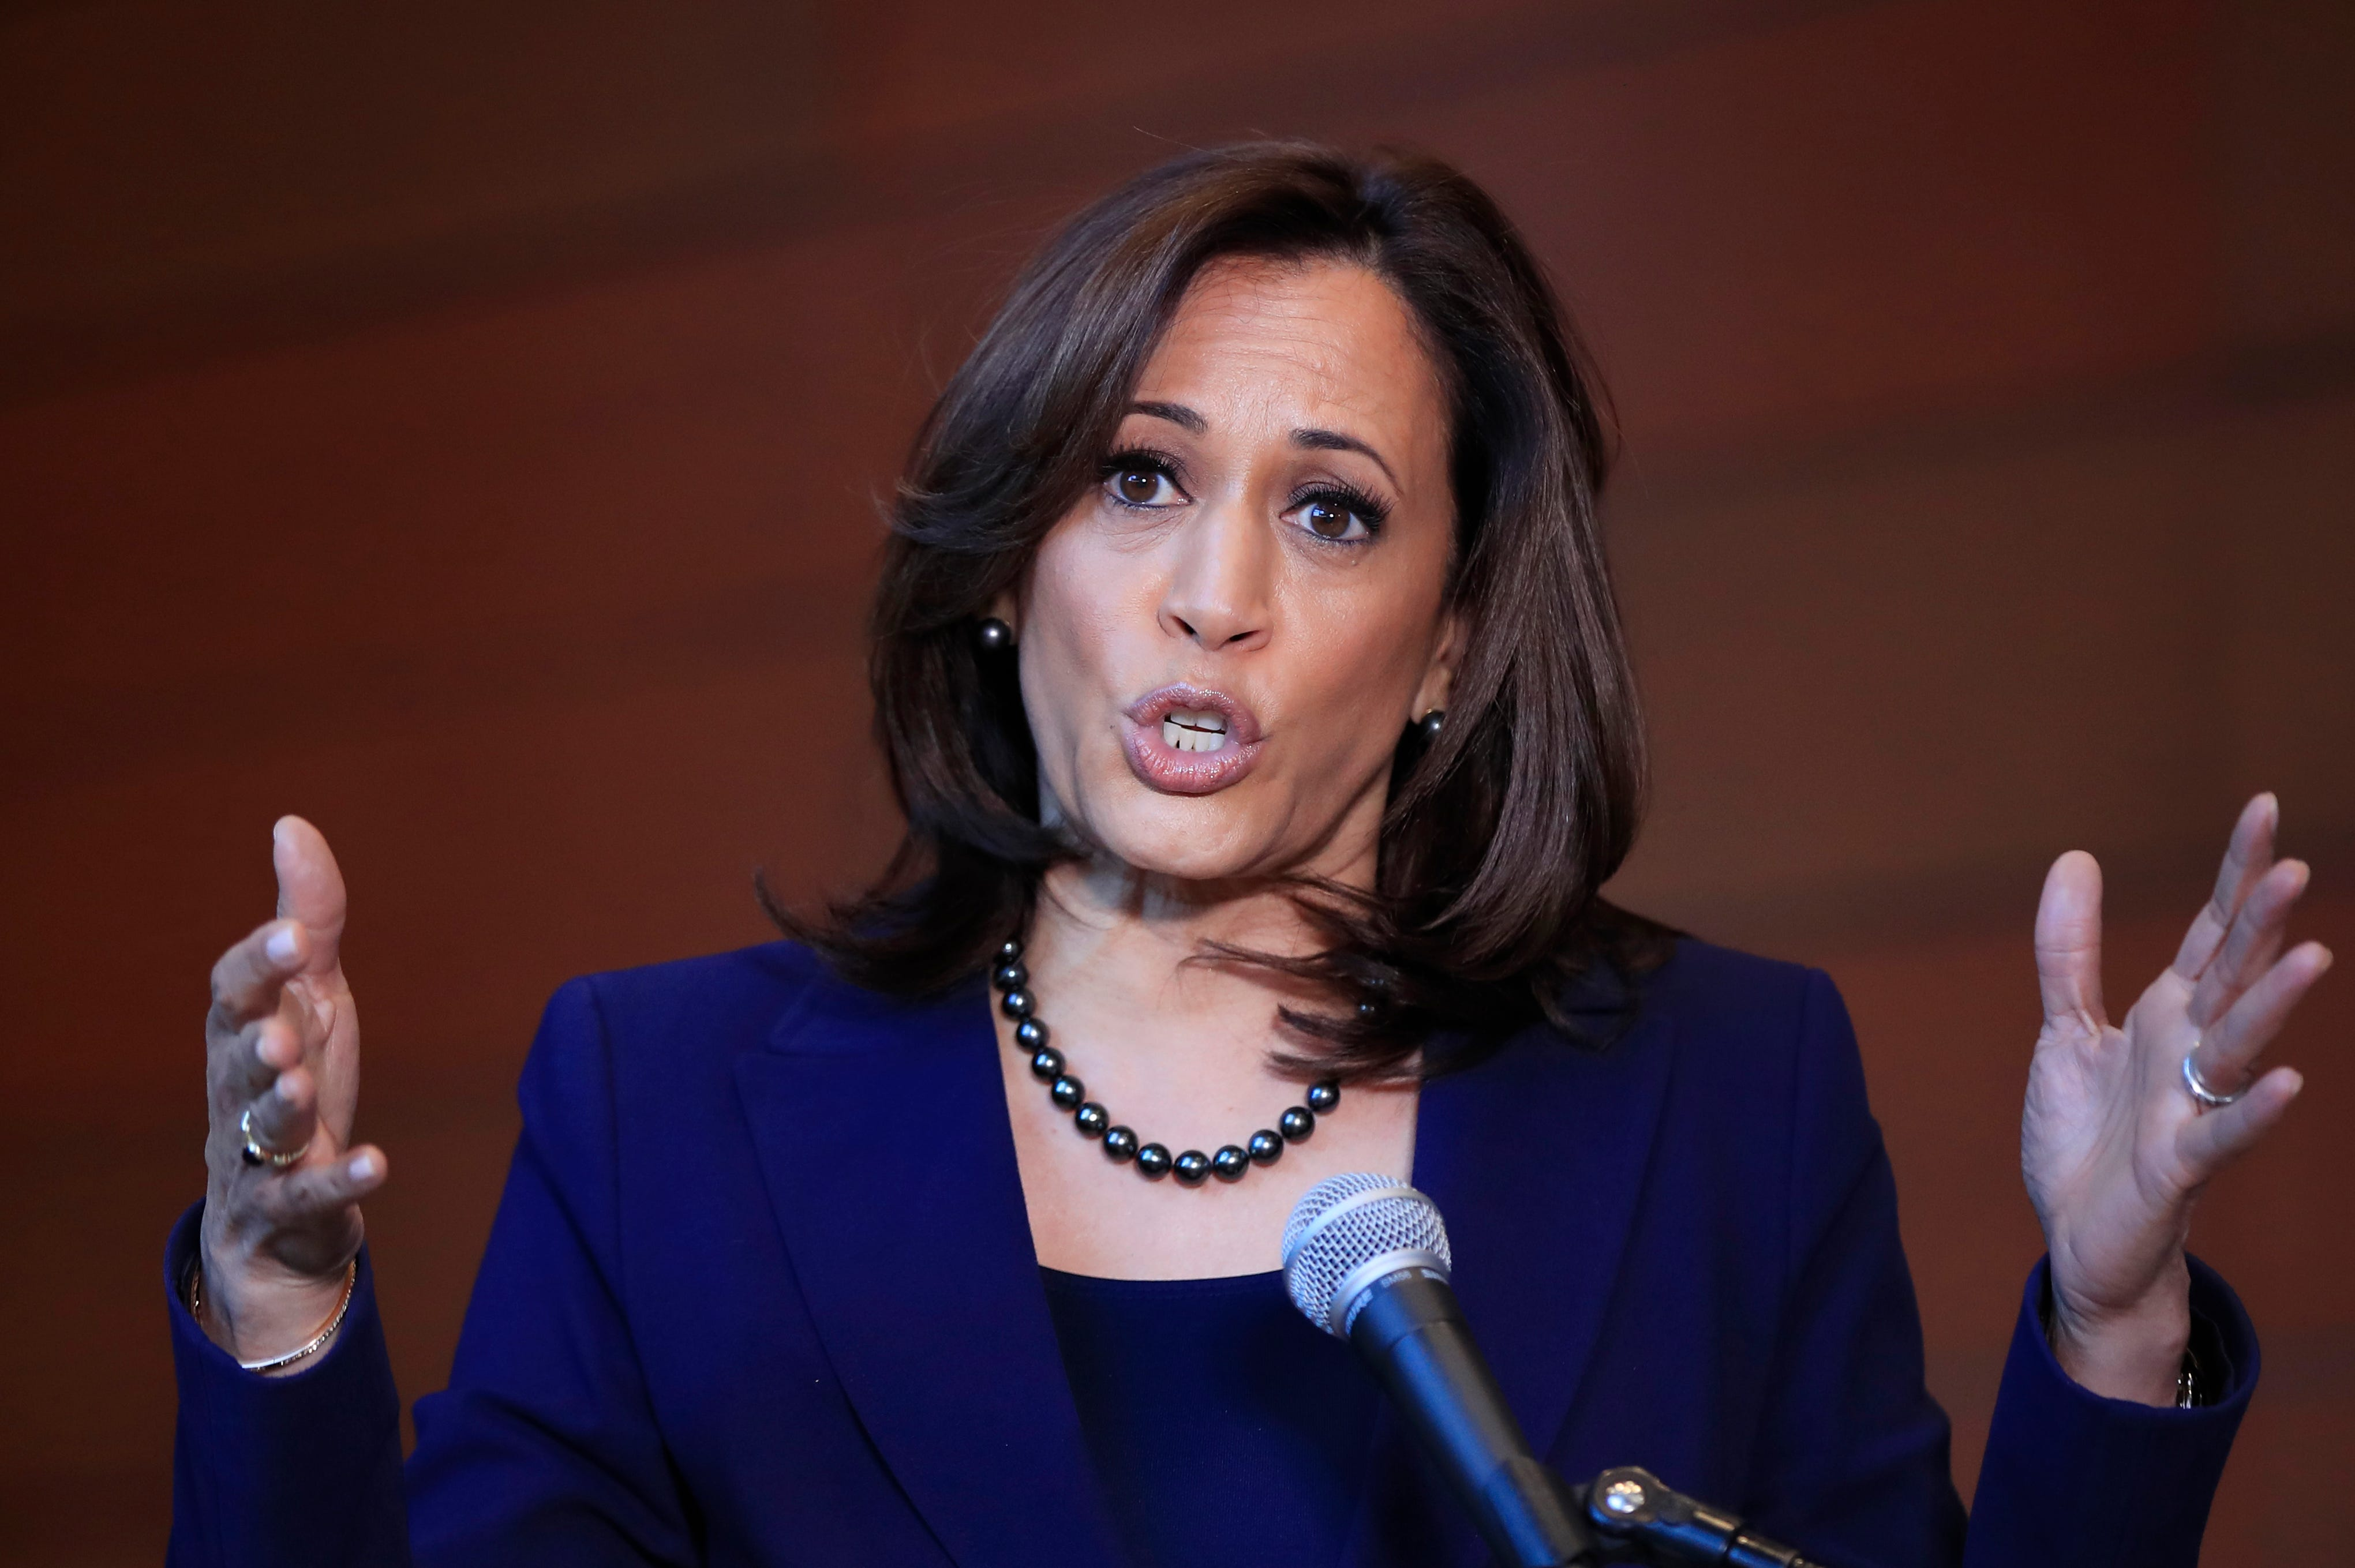 FILE - In this Monday, Jan. 21, 2019, file photo, Sen. Kamala Harris, D-Calif., speaks to members of the media at her alma mater, Howard University, in Washington, following her announcement earlier in the morning that she will run for president. Some Democratic presidential hopefuls are enthusiastically embracing plans to raise taxes on the richest Americans. Harris has proposed rolling back the recent GOP tax cuts for wealthier families to pay for tax rebates for middle- and lower-income earners.